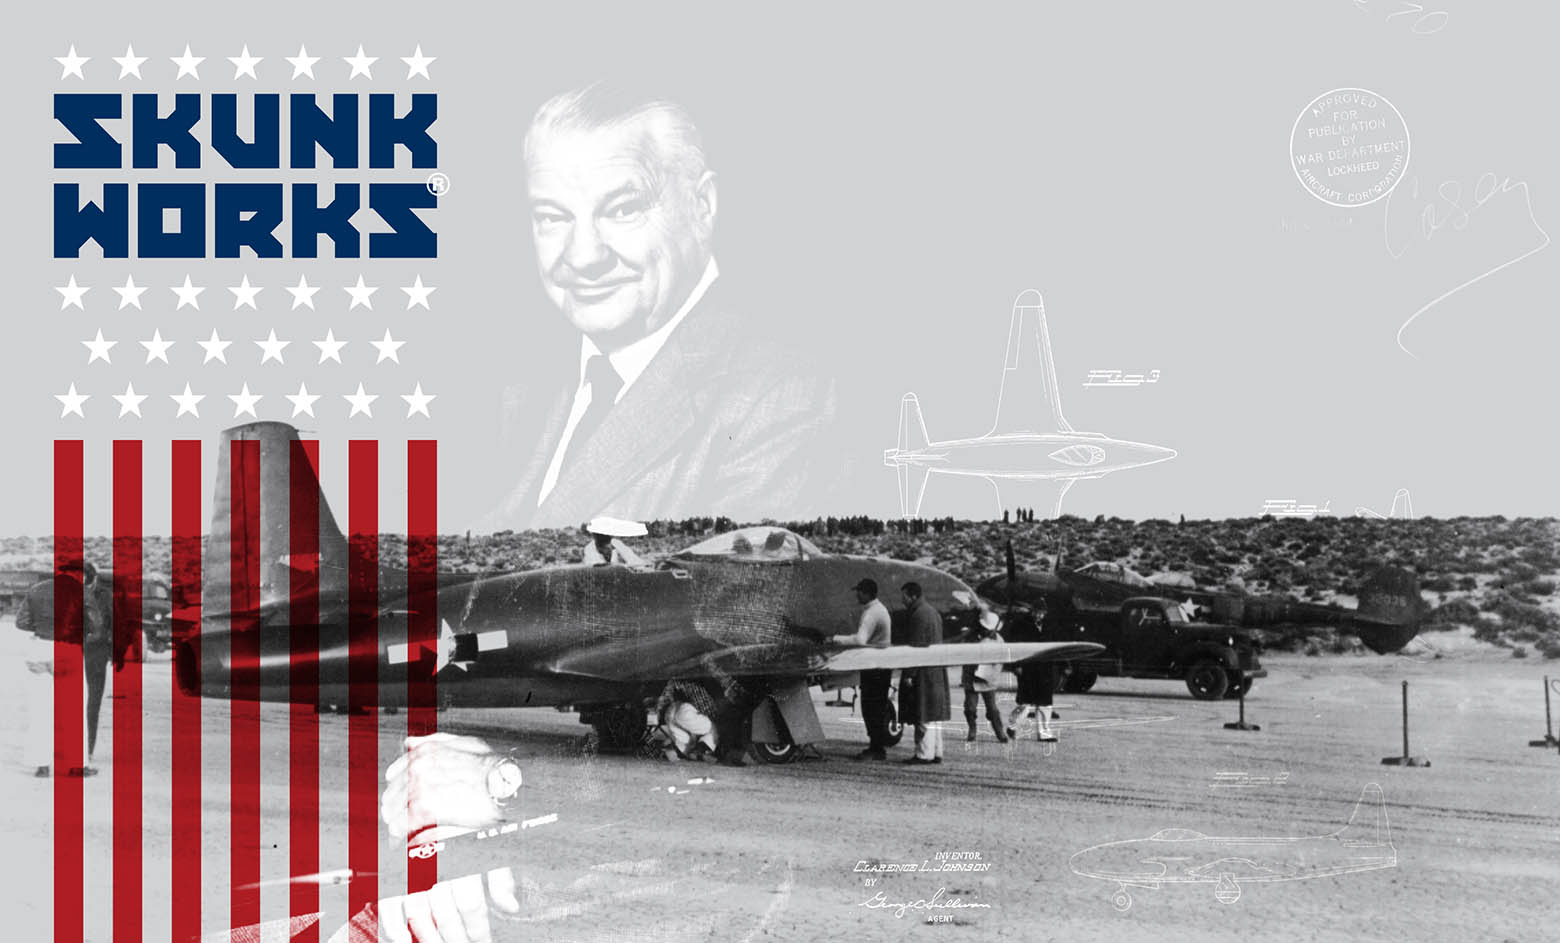 A manufactured image of Michigan alumnus Kelly Johnson superimposed over a historical image of a Lockheed P-80 fighter jet.